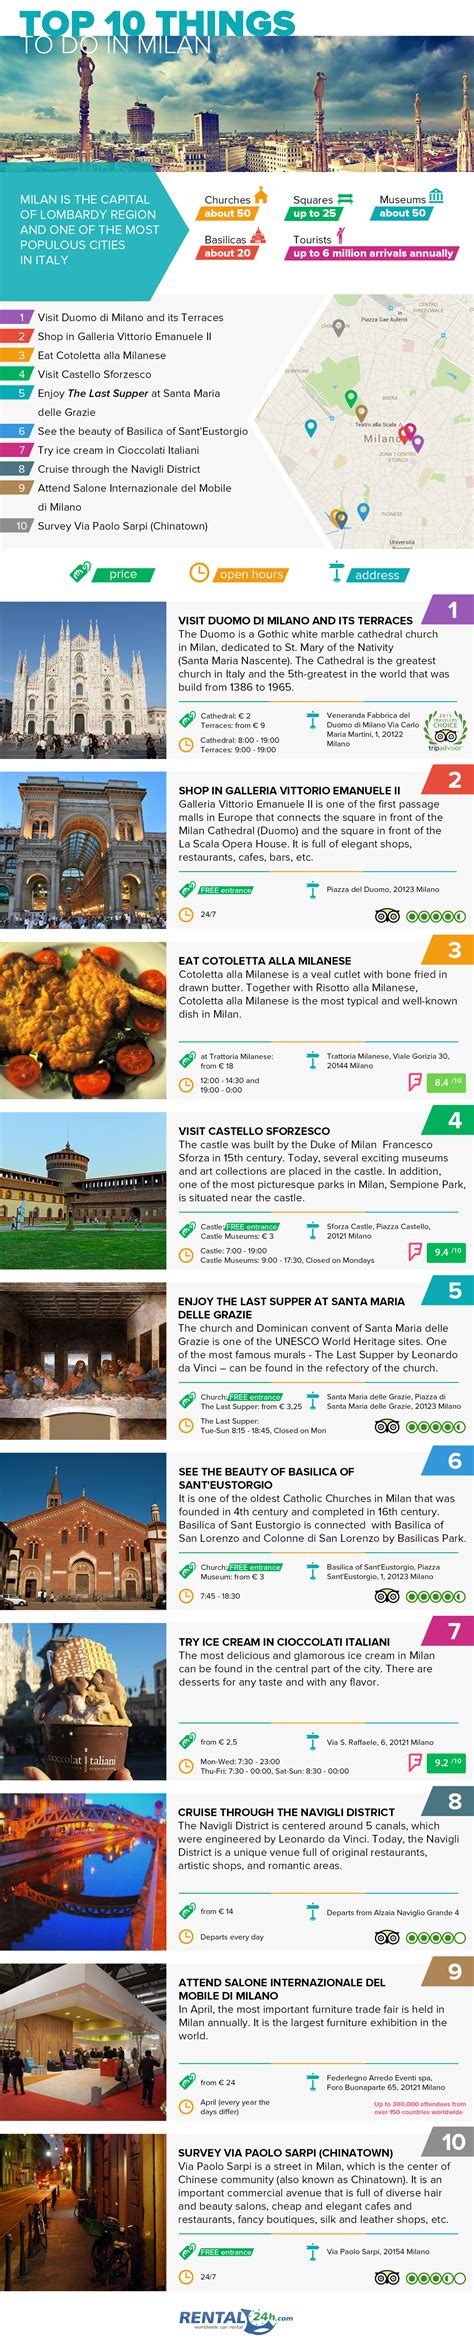 milan best things to do top 10 things to do in milan daly